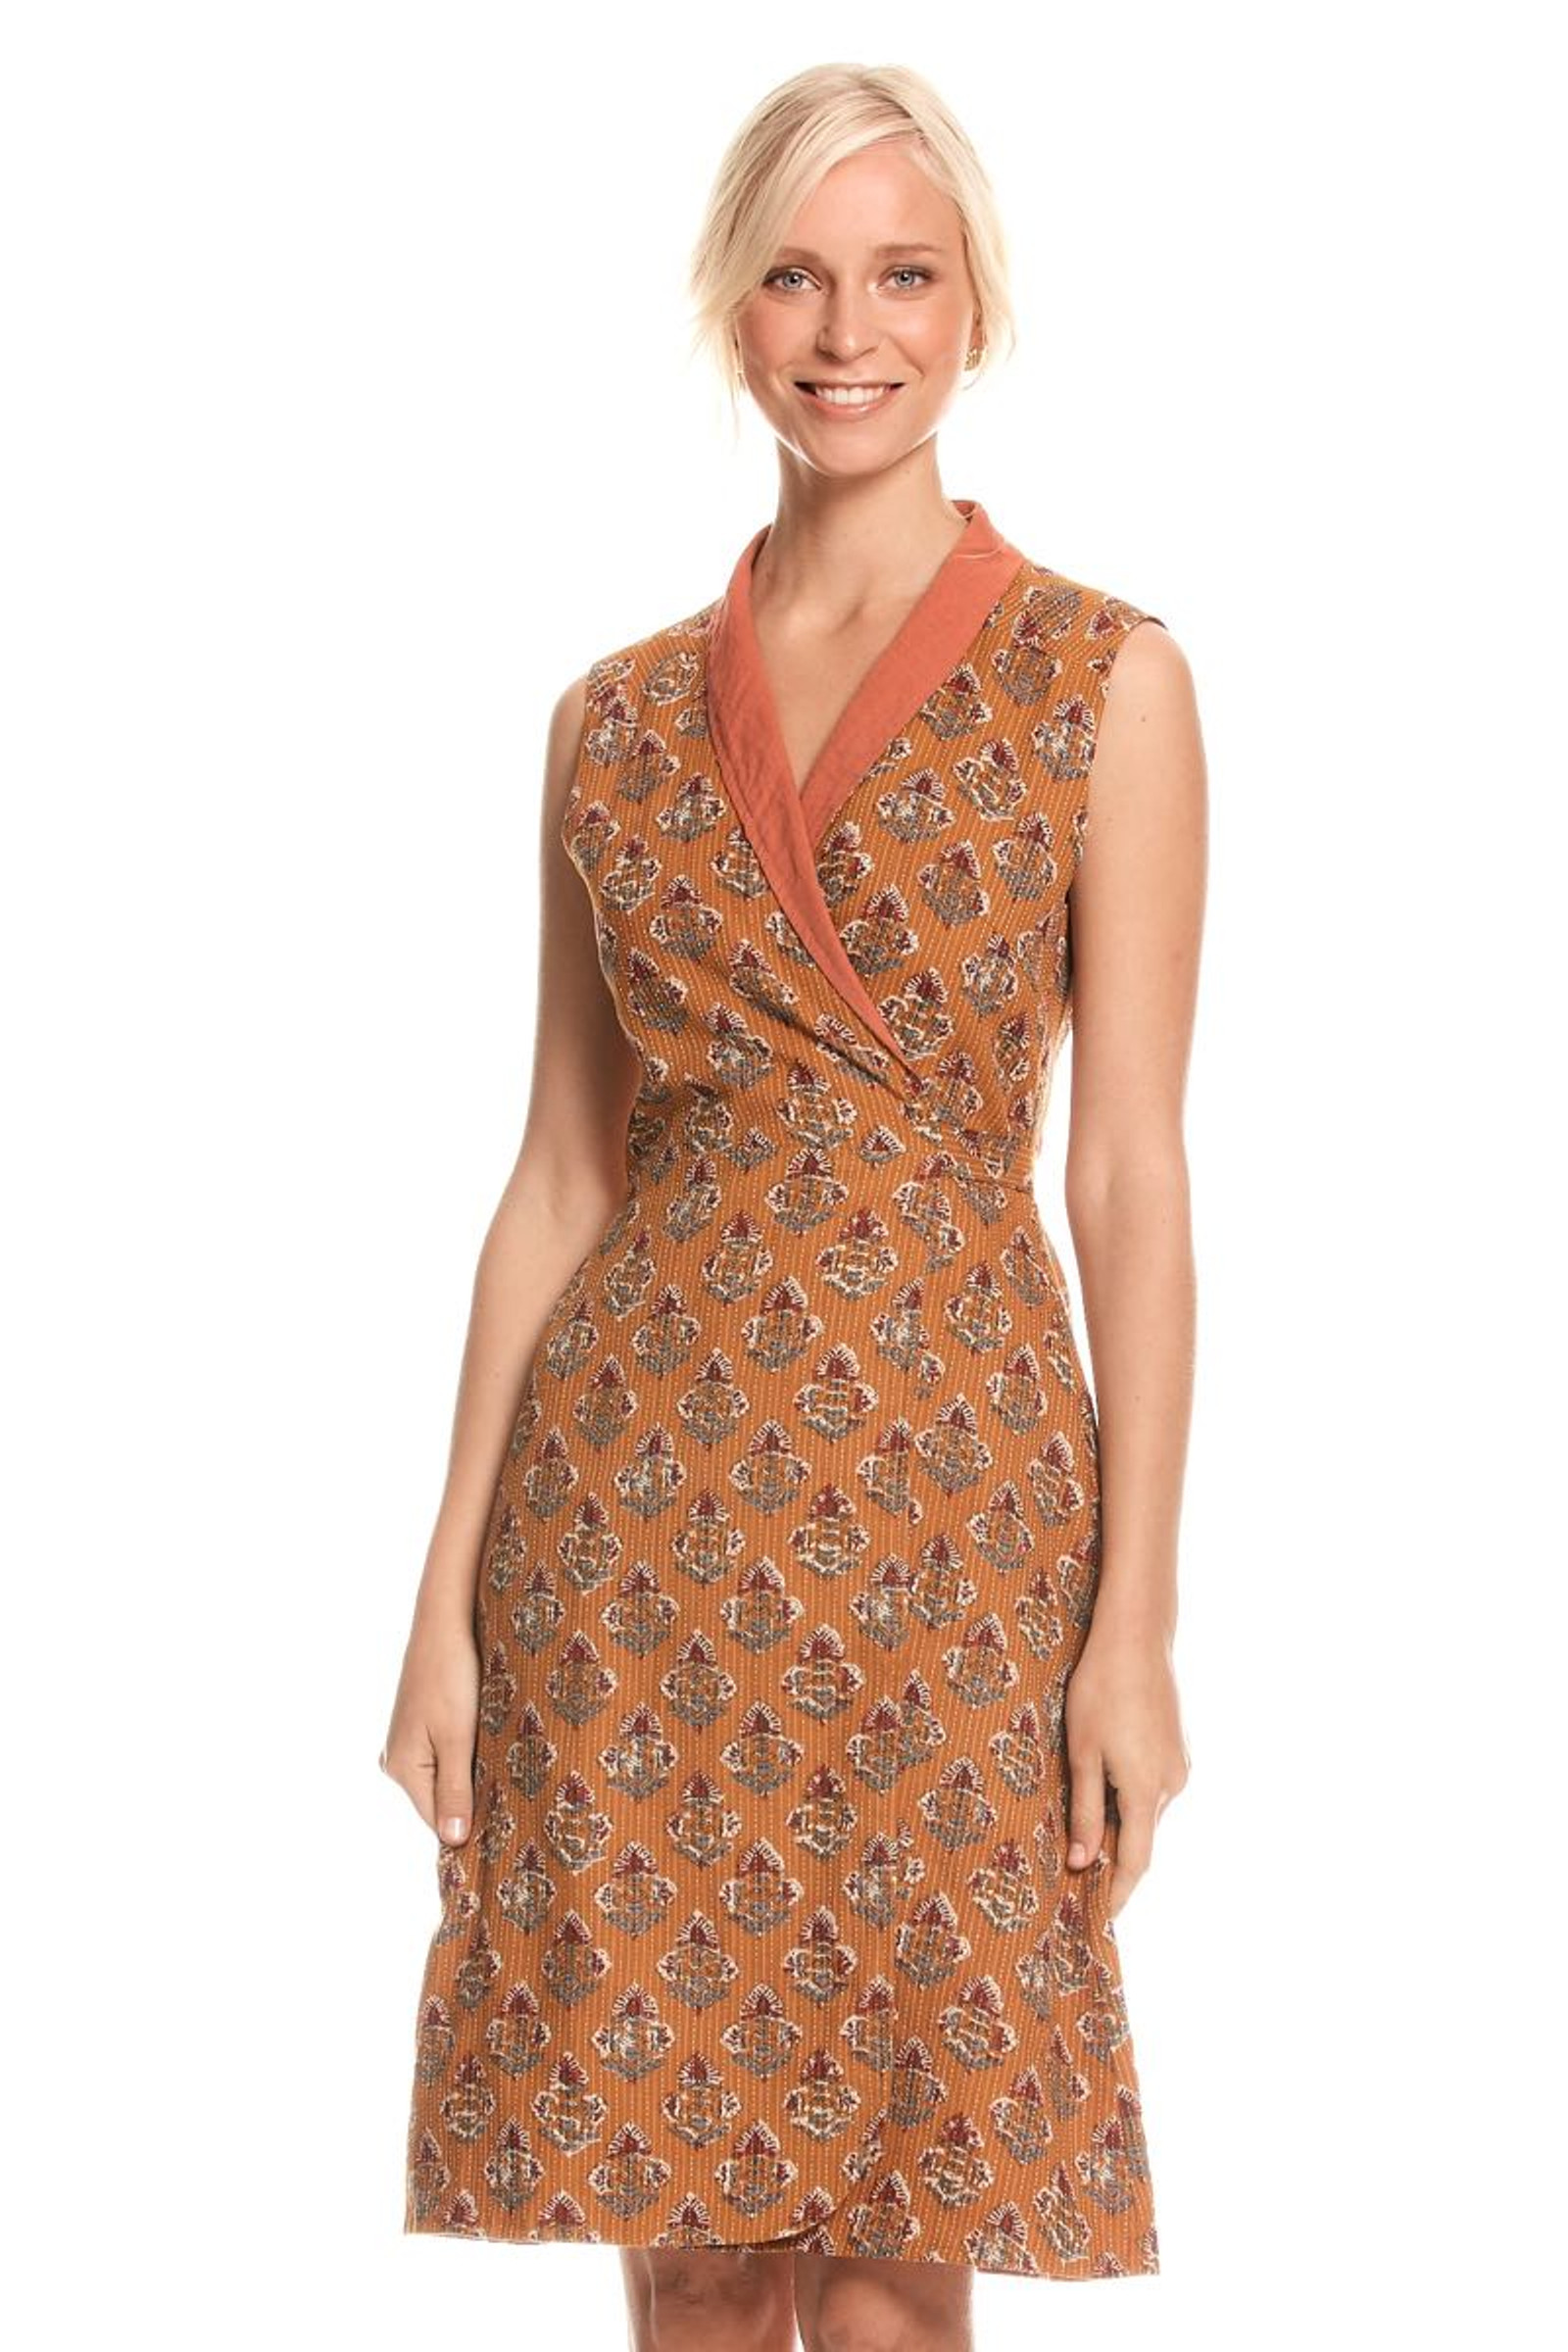 Rhianna Reversible Dress - Neem & Clay